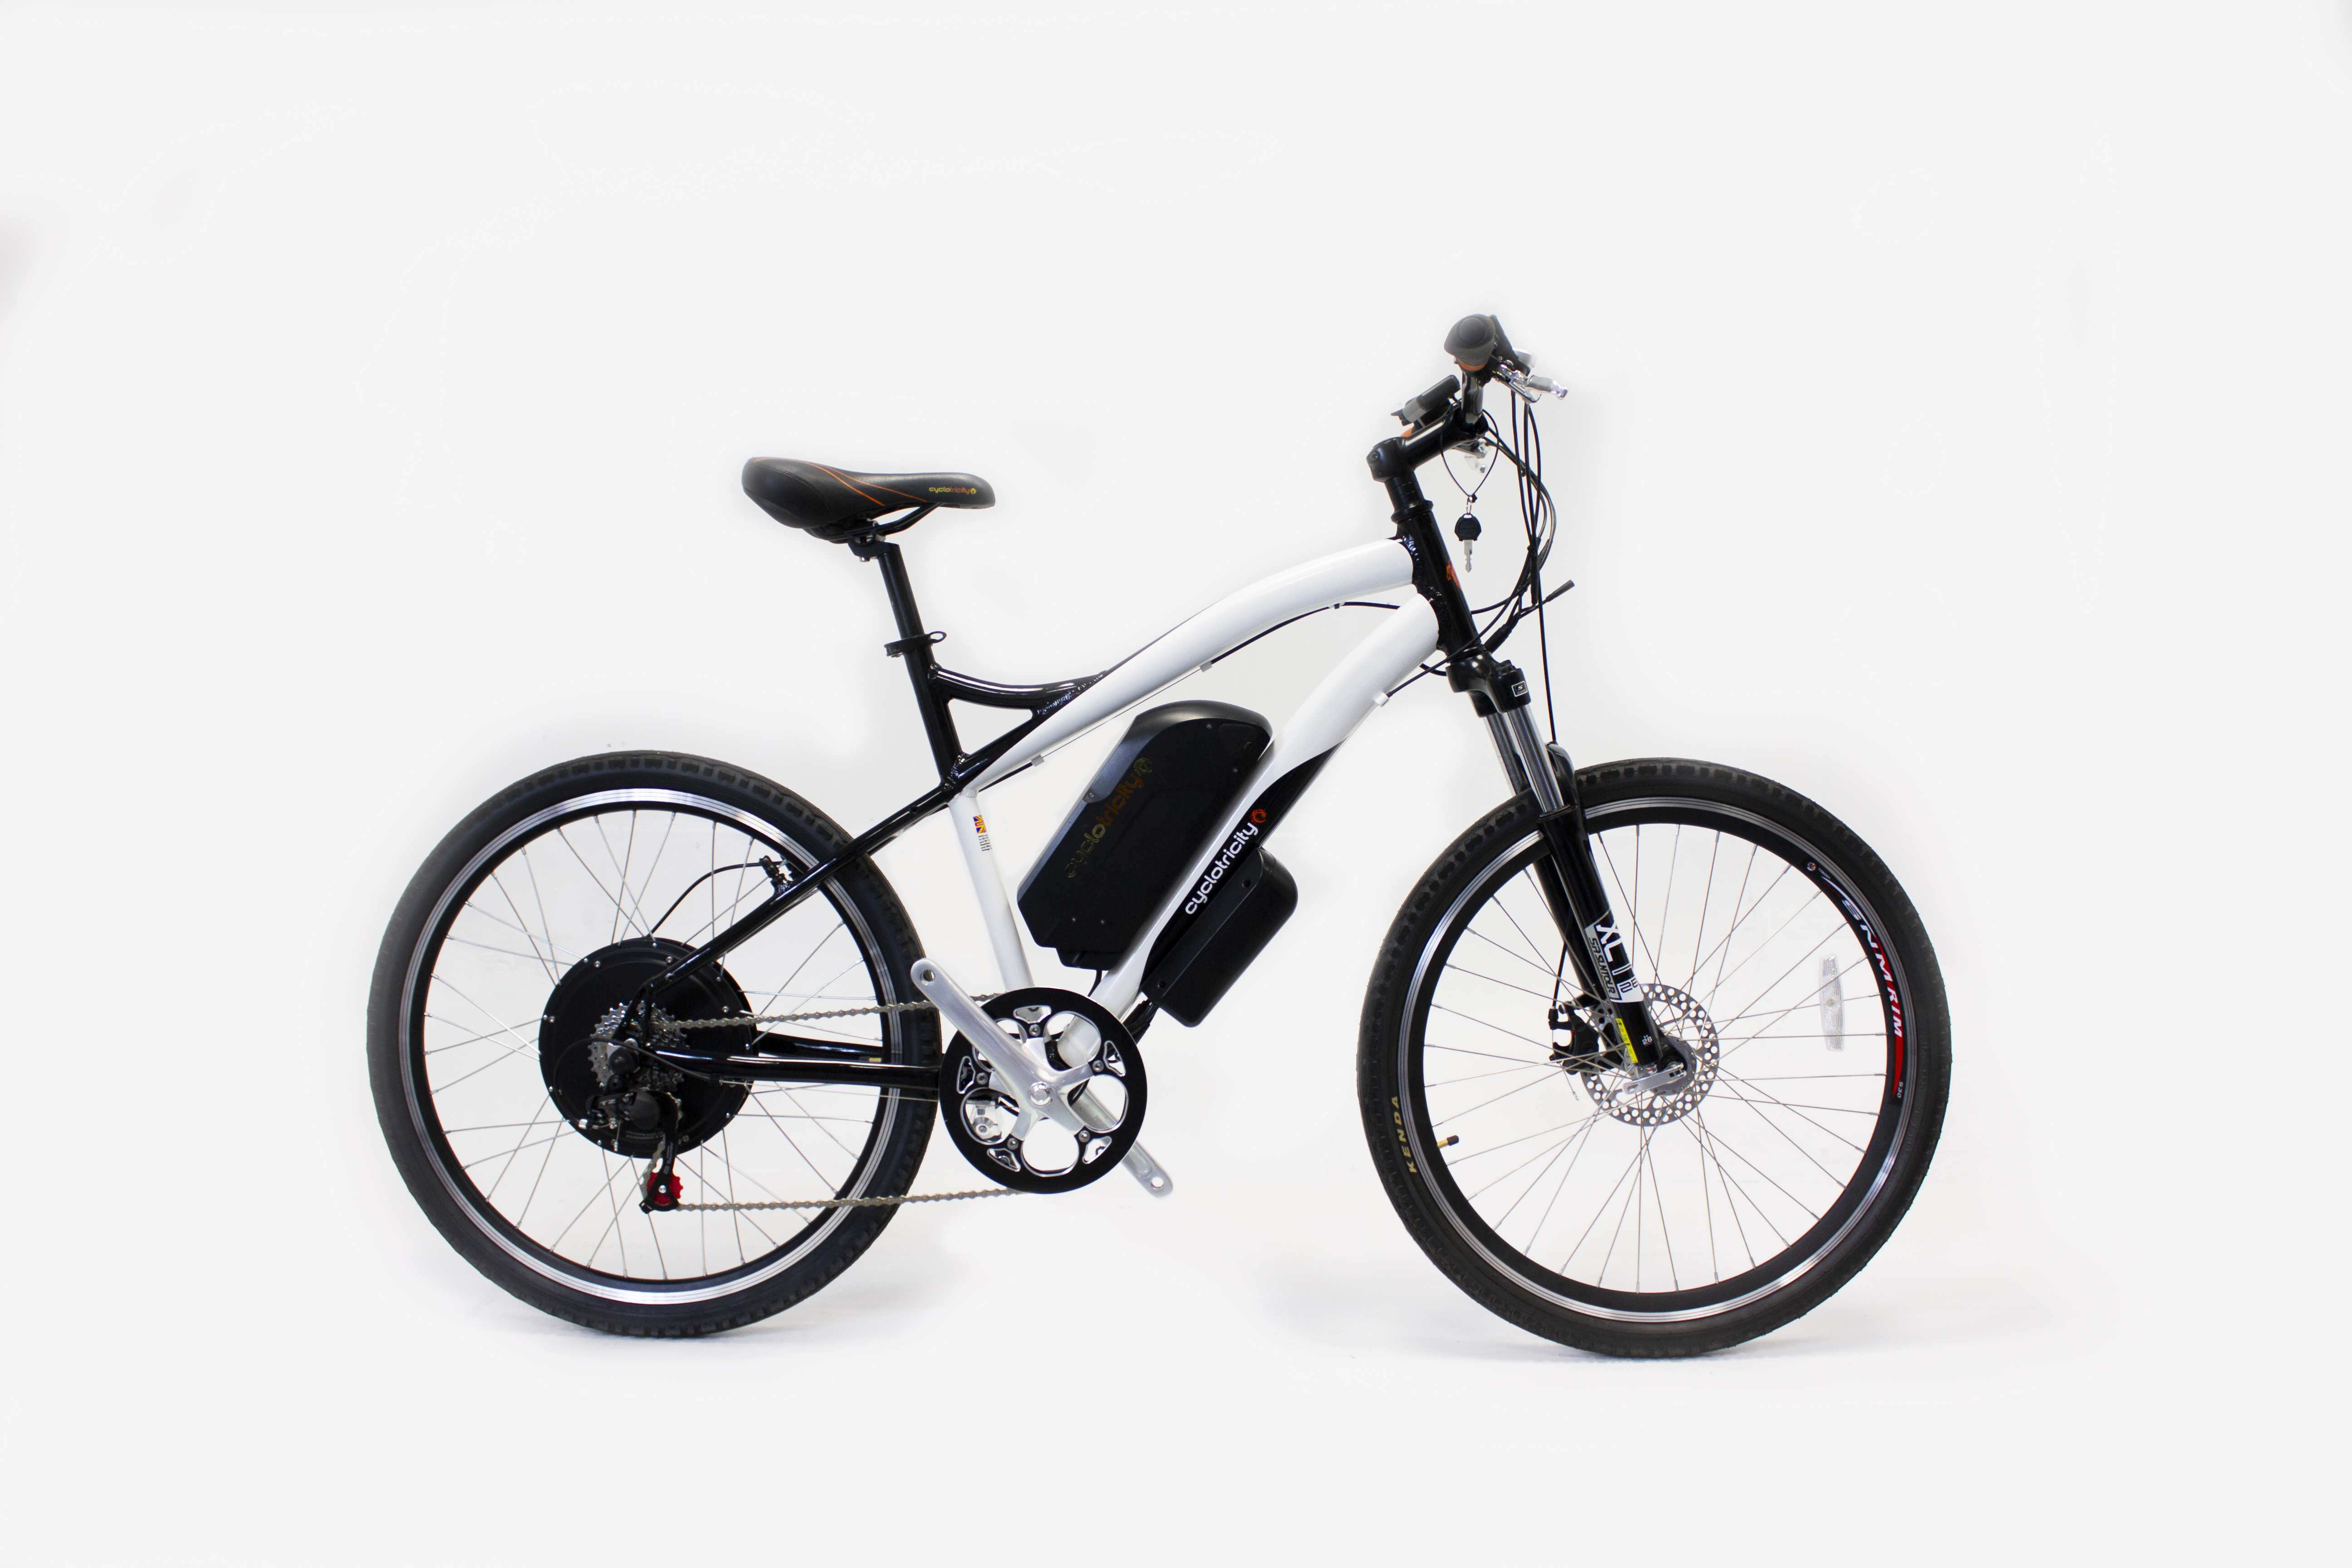 cdfb3424c07 The NEW Cyclotricity Stealth 29er 250/1000w with 16Ah battery and Hydraulic  Brakes. New design for better handling! A powerful 48V 1000W electric bike.